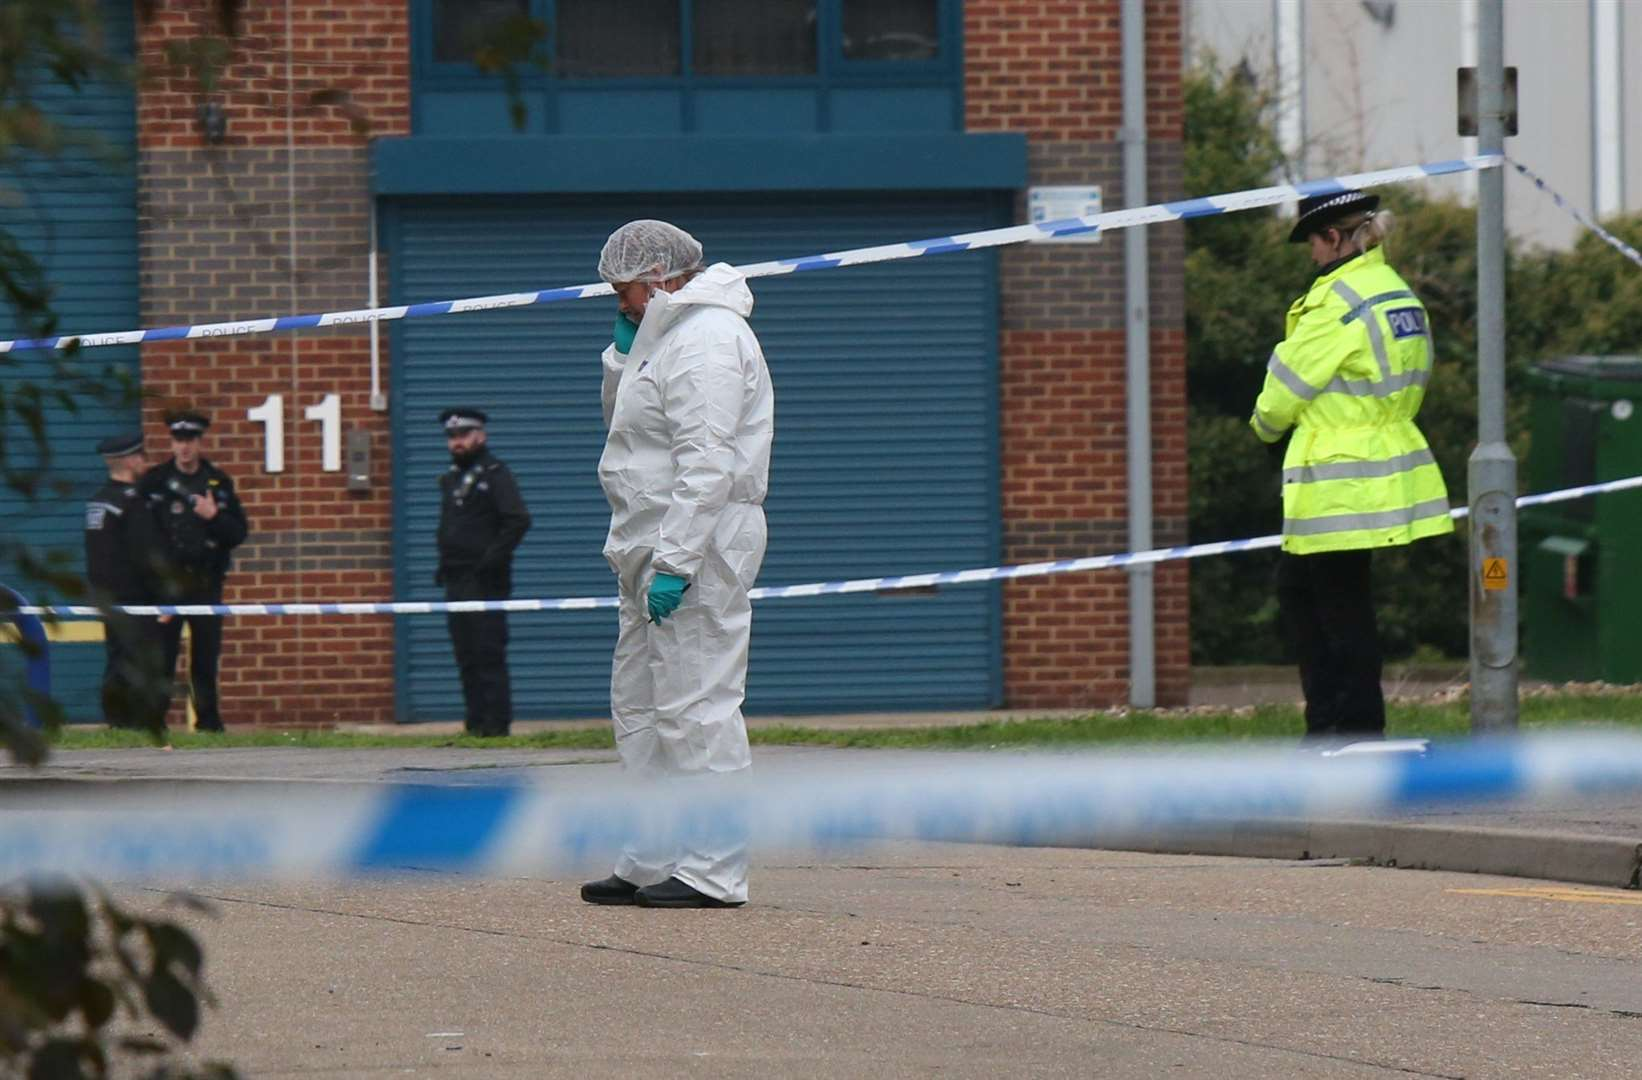 Forensics officers are combing the scene Picture: UKNIP